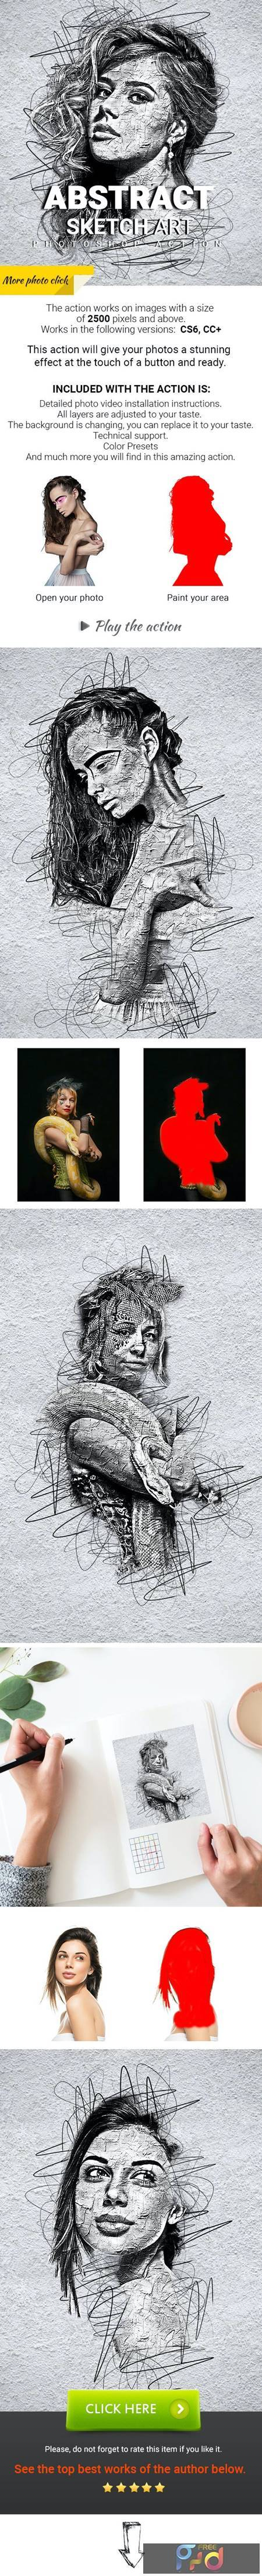 Abstract Sketch Art Photoshop Action 29913460 1